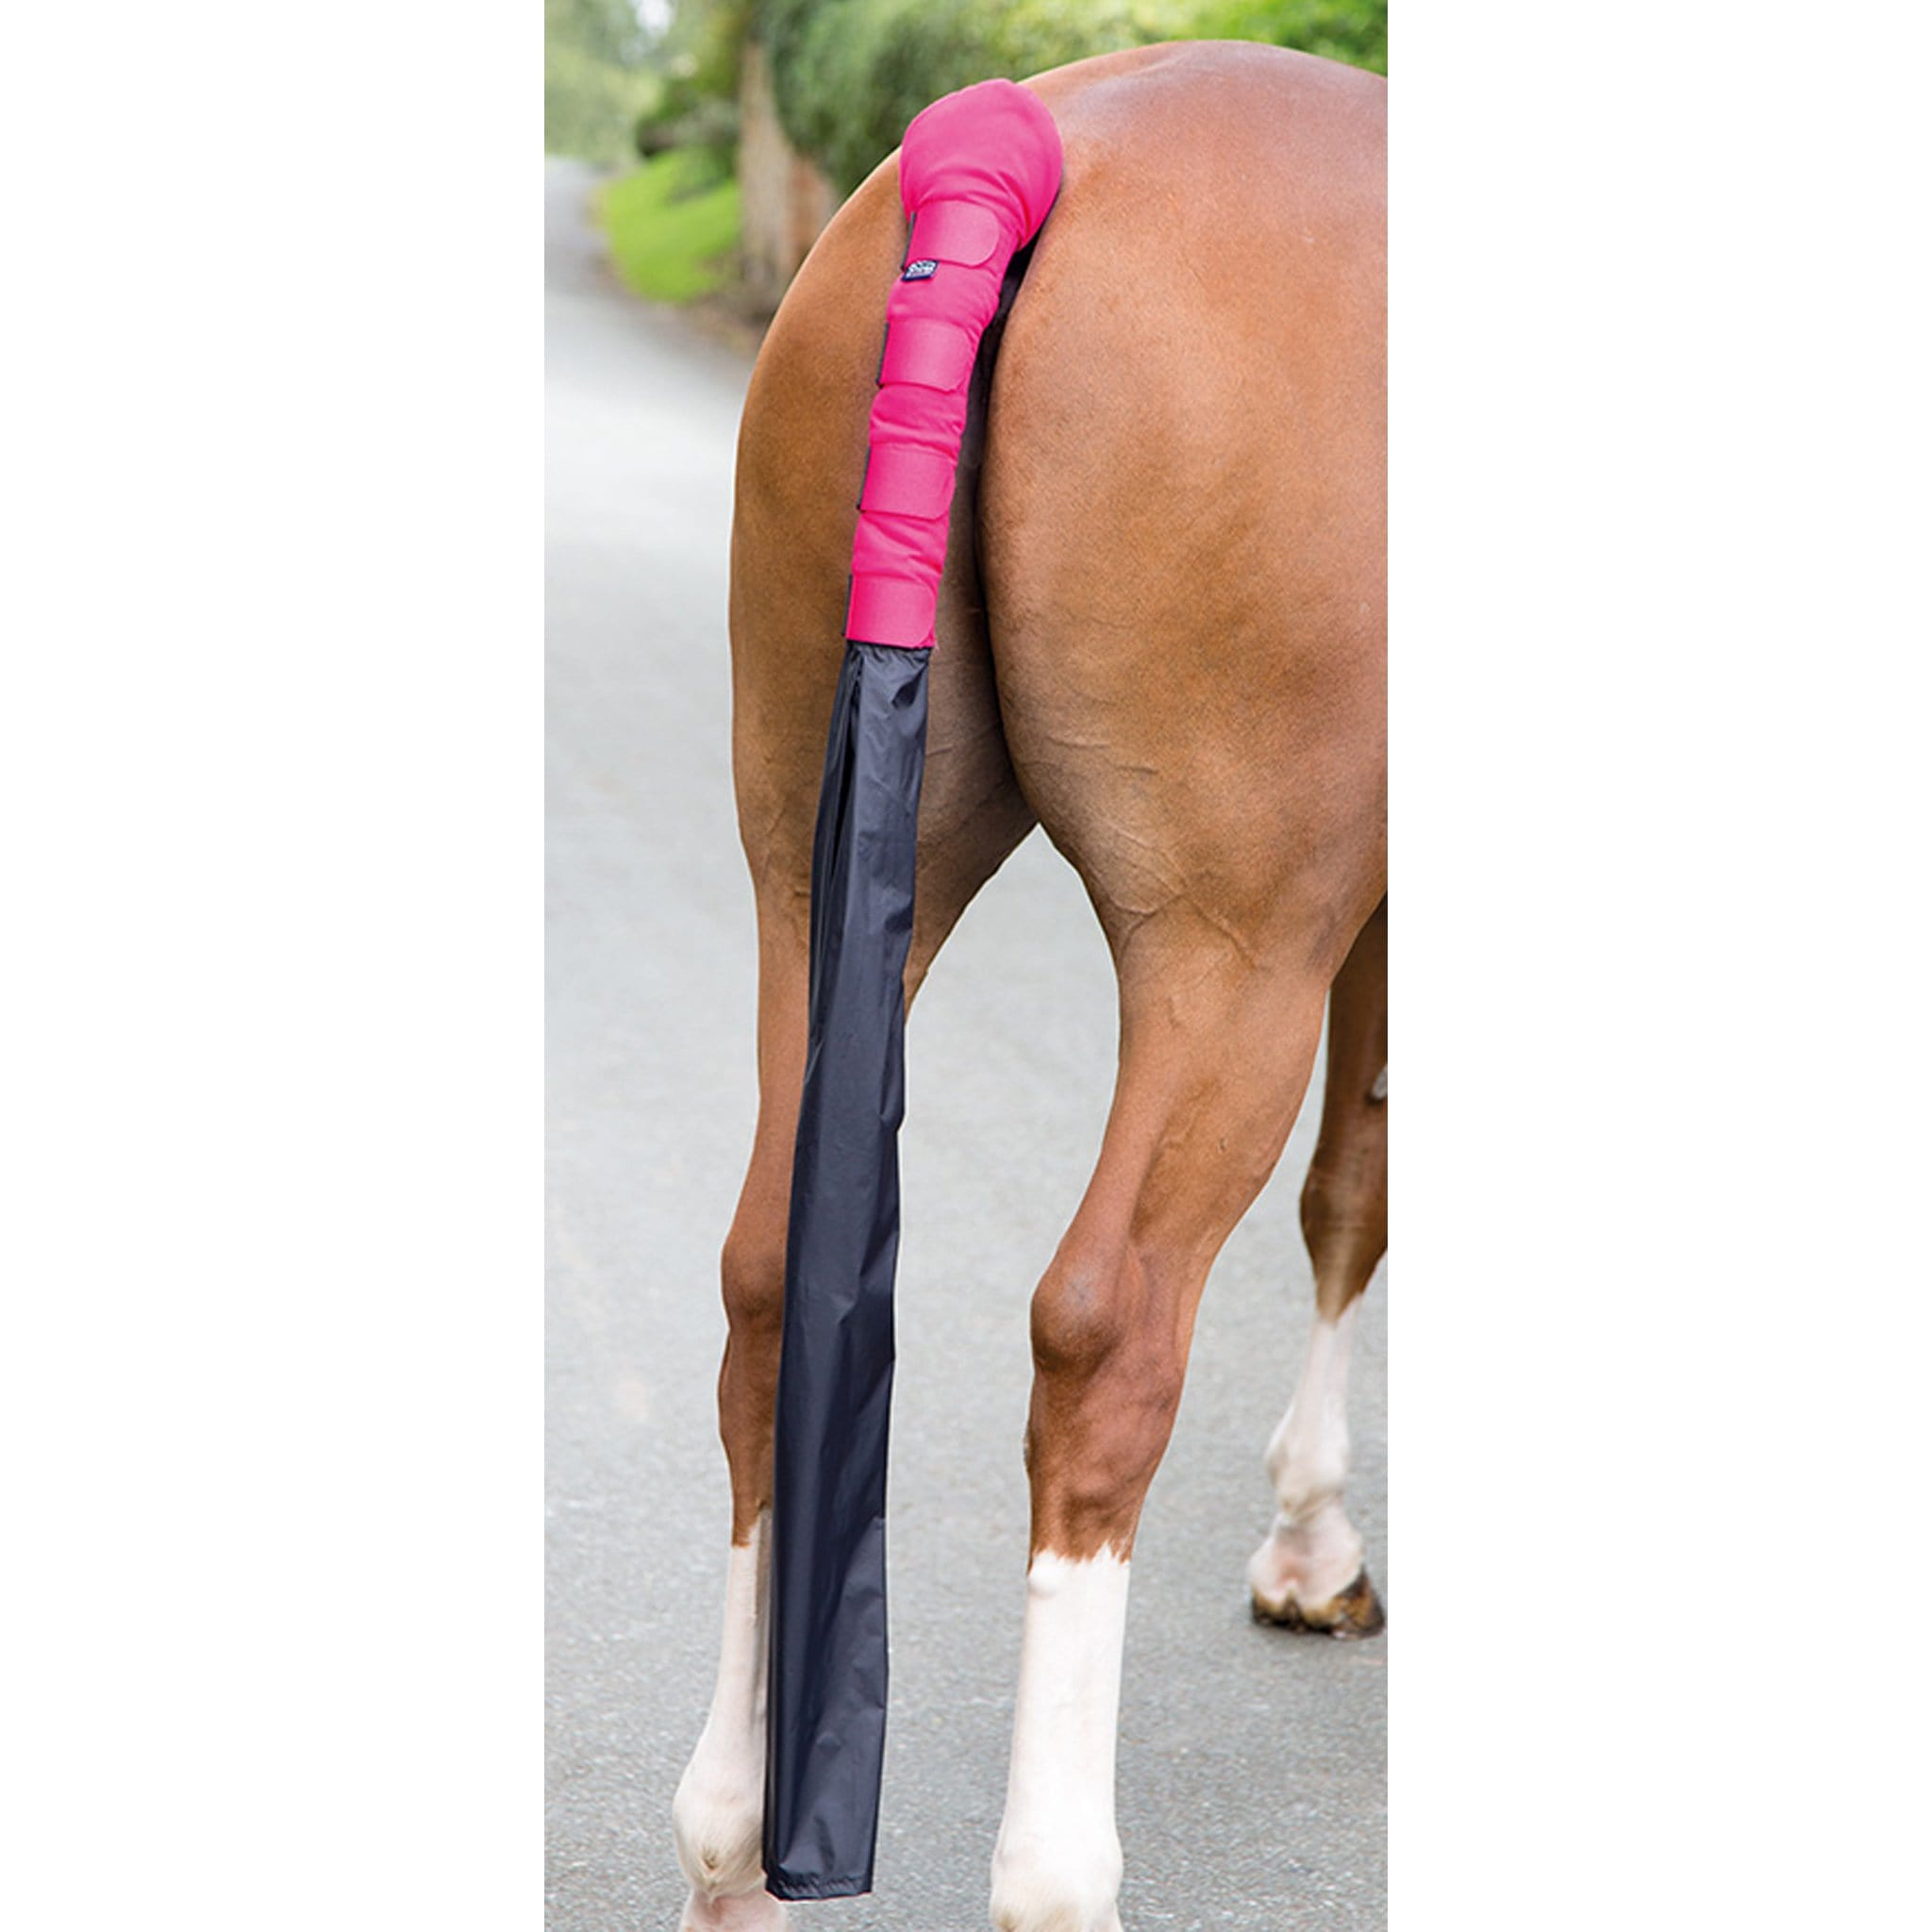 Shires Padded Tail Guard with Bag in Pink